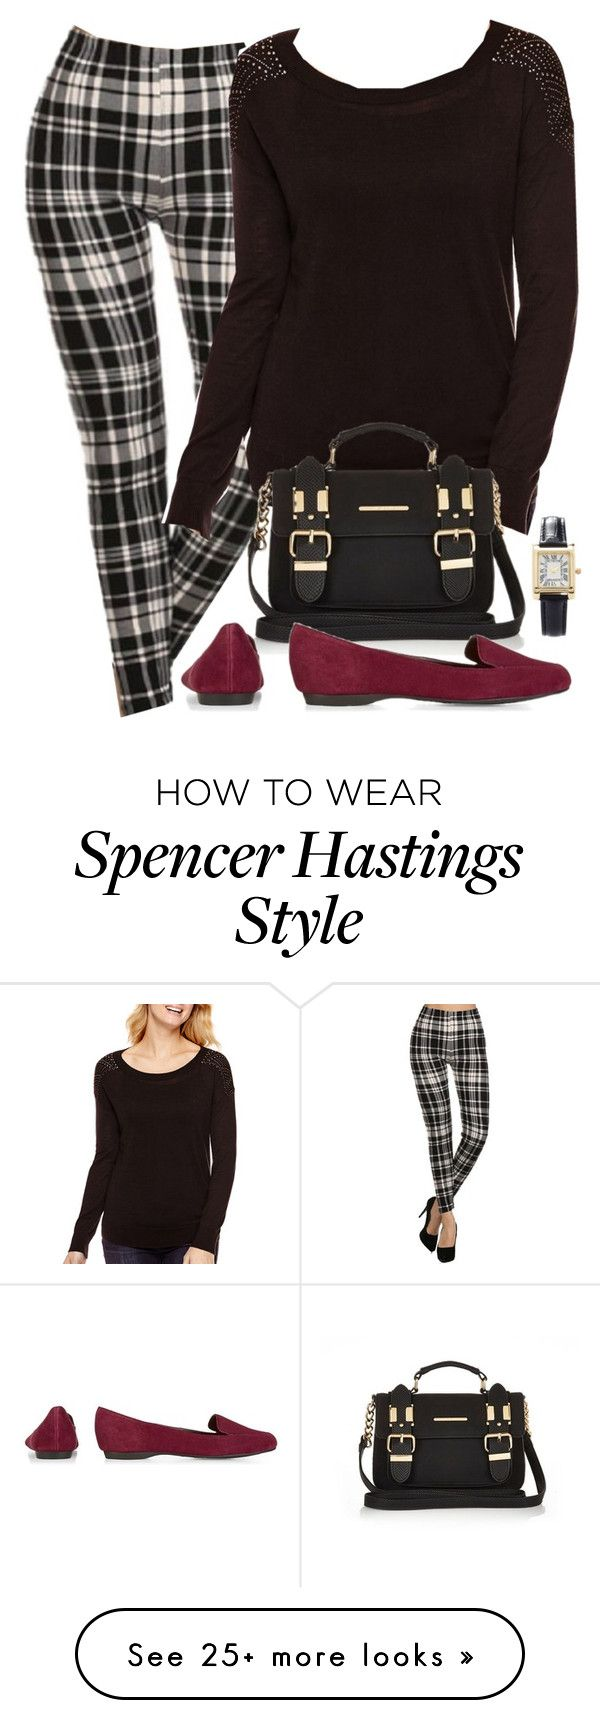 """""""Spencer Hastings (edgy version) inspired outfit"""" by liarsstyle on Polyvore featuring A.N.A, River Island and Forever 21"""